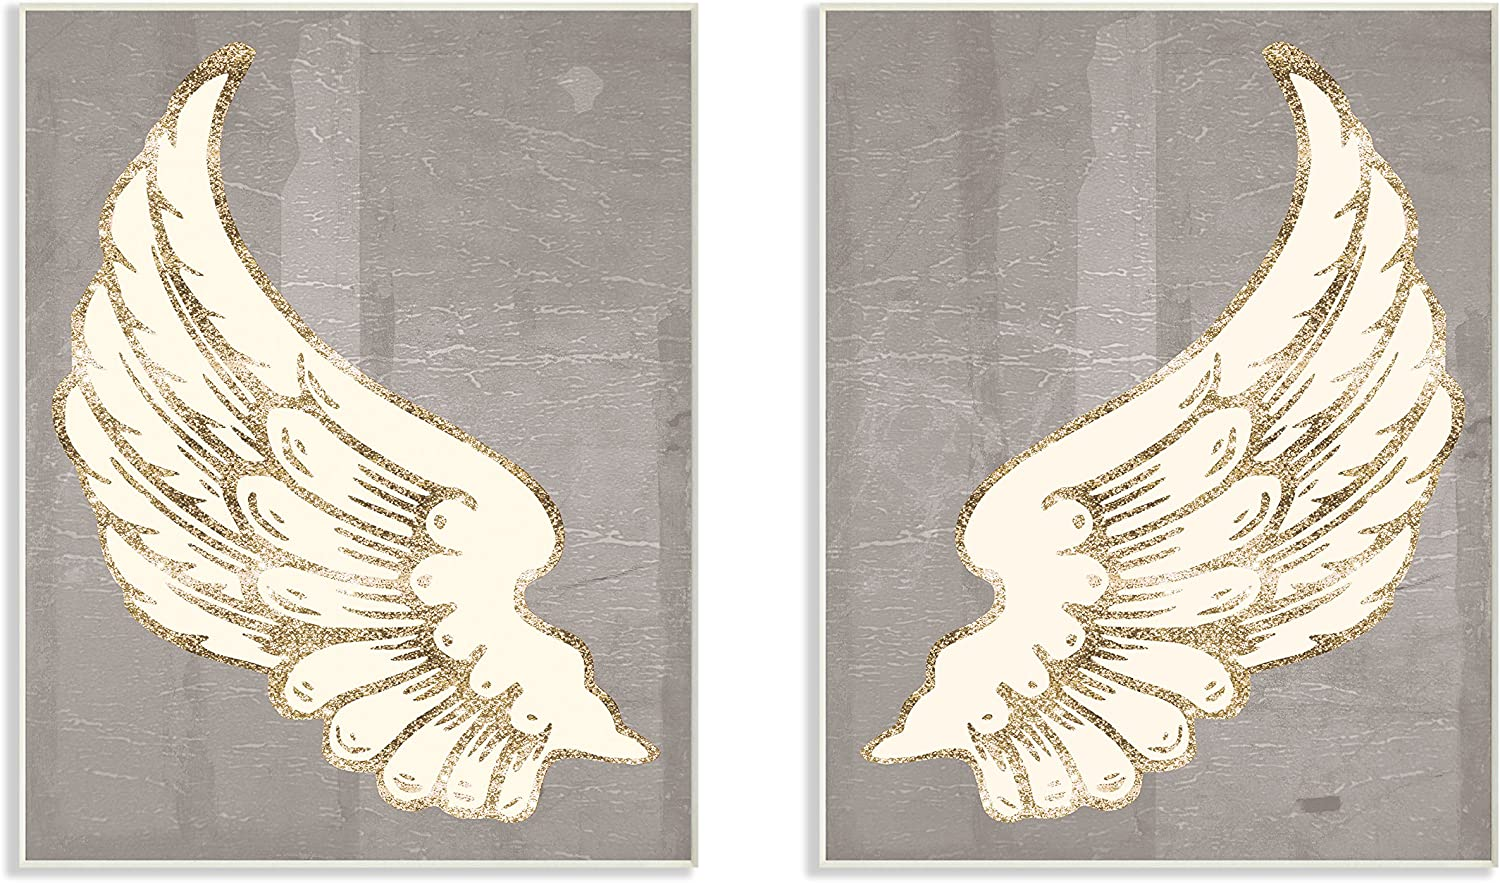 Stupell Home Décor Modern Baroque Angel Wings Dark Grey 2pc Wall Plaque Art Set, 10 x 0.5 x 15, Proudly Made in USA